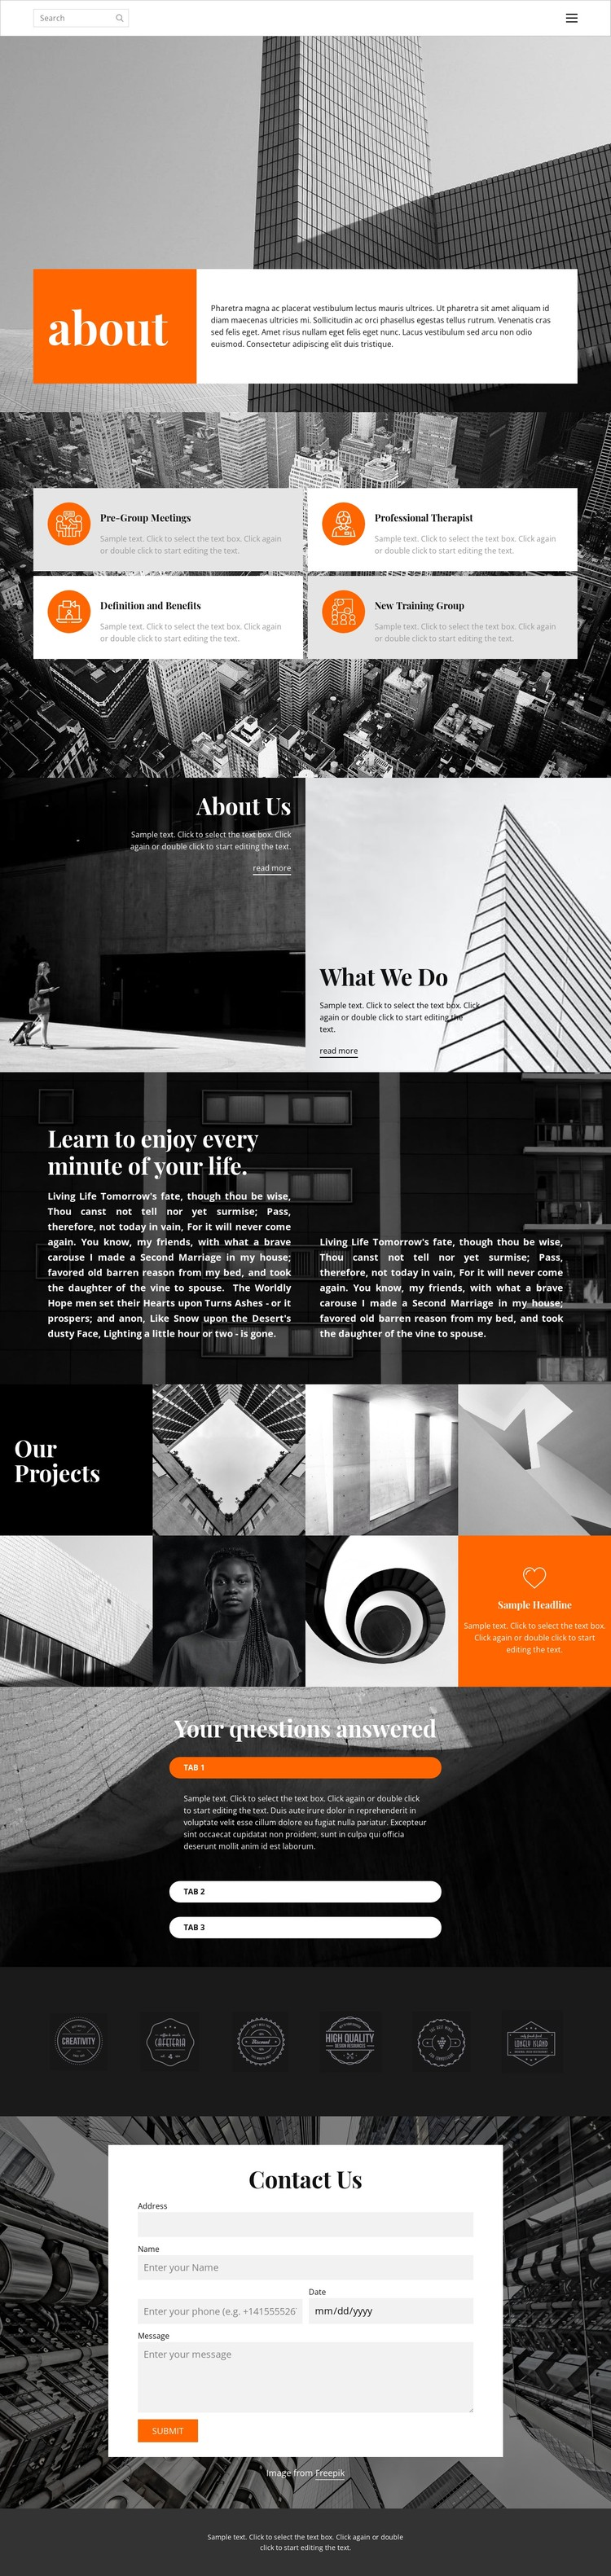 New projects studio CSS Template